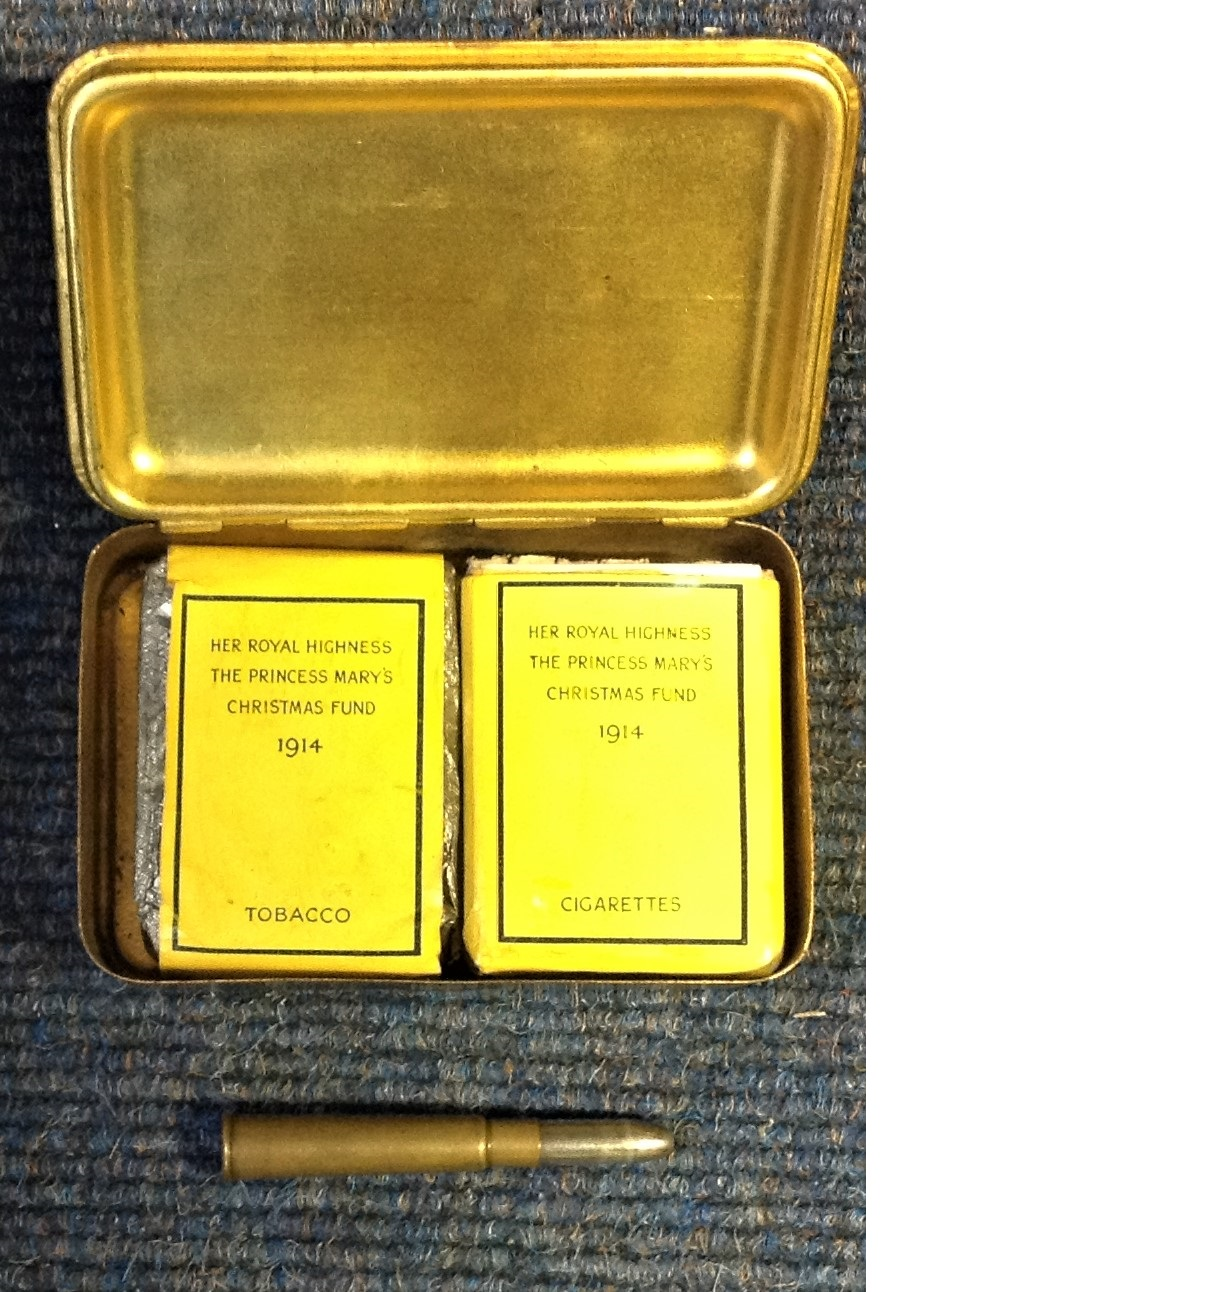 Lot 28 - Princess Mary brass gift box, given to troops during WWI in 1914. Rare with complete original